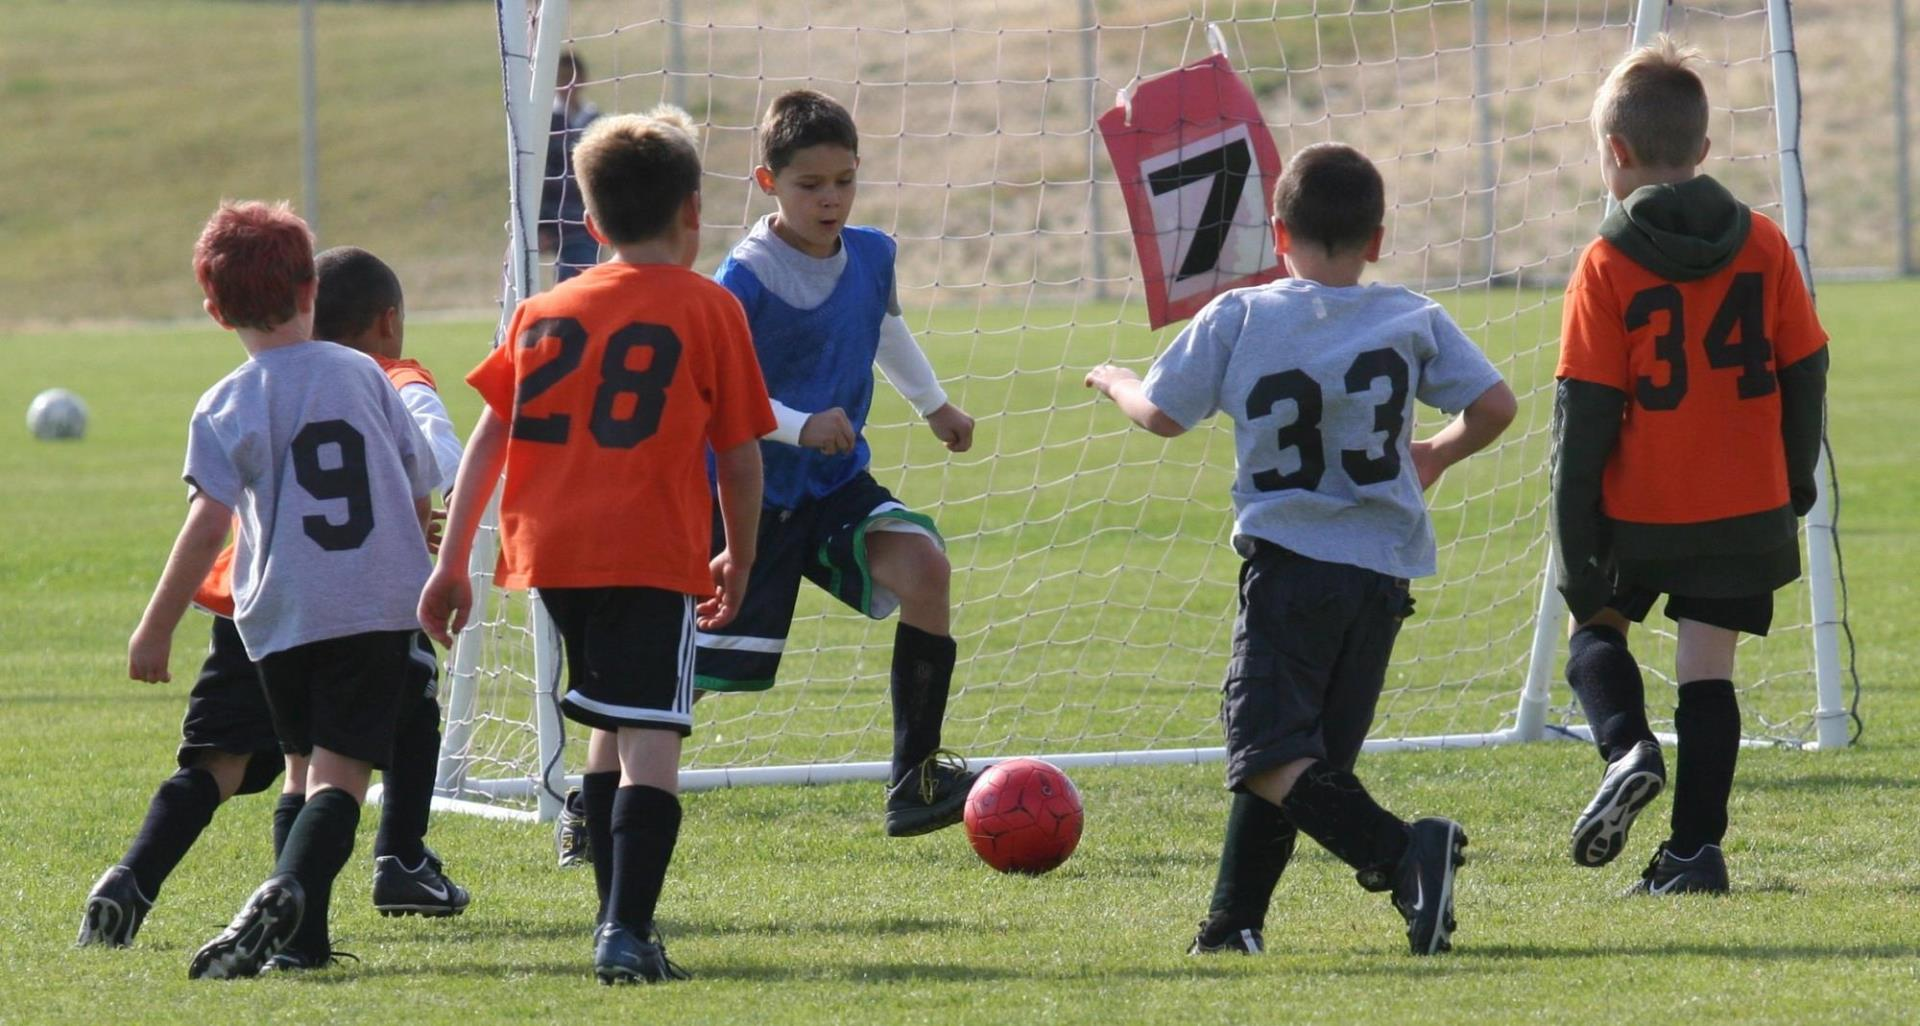 Fall 2007 Fall Youth Soccer City of Walla Walla